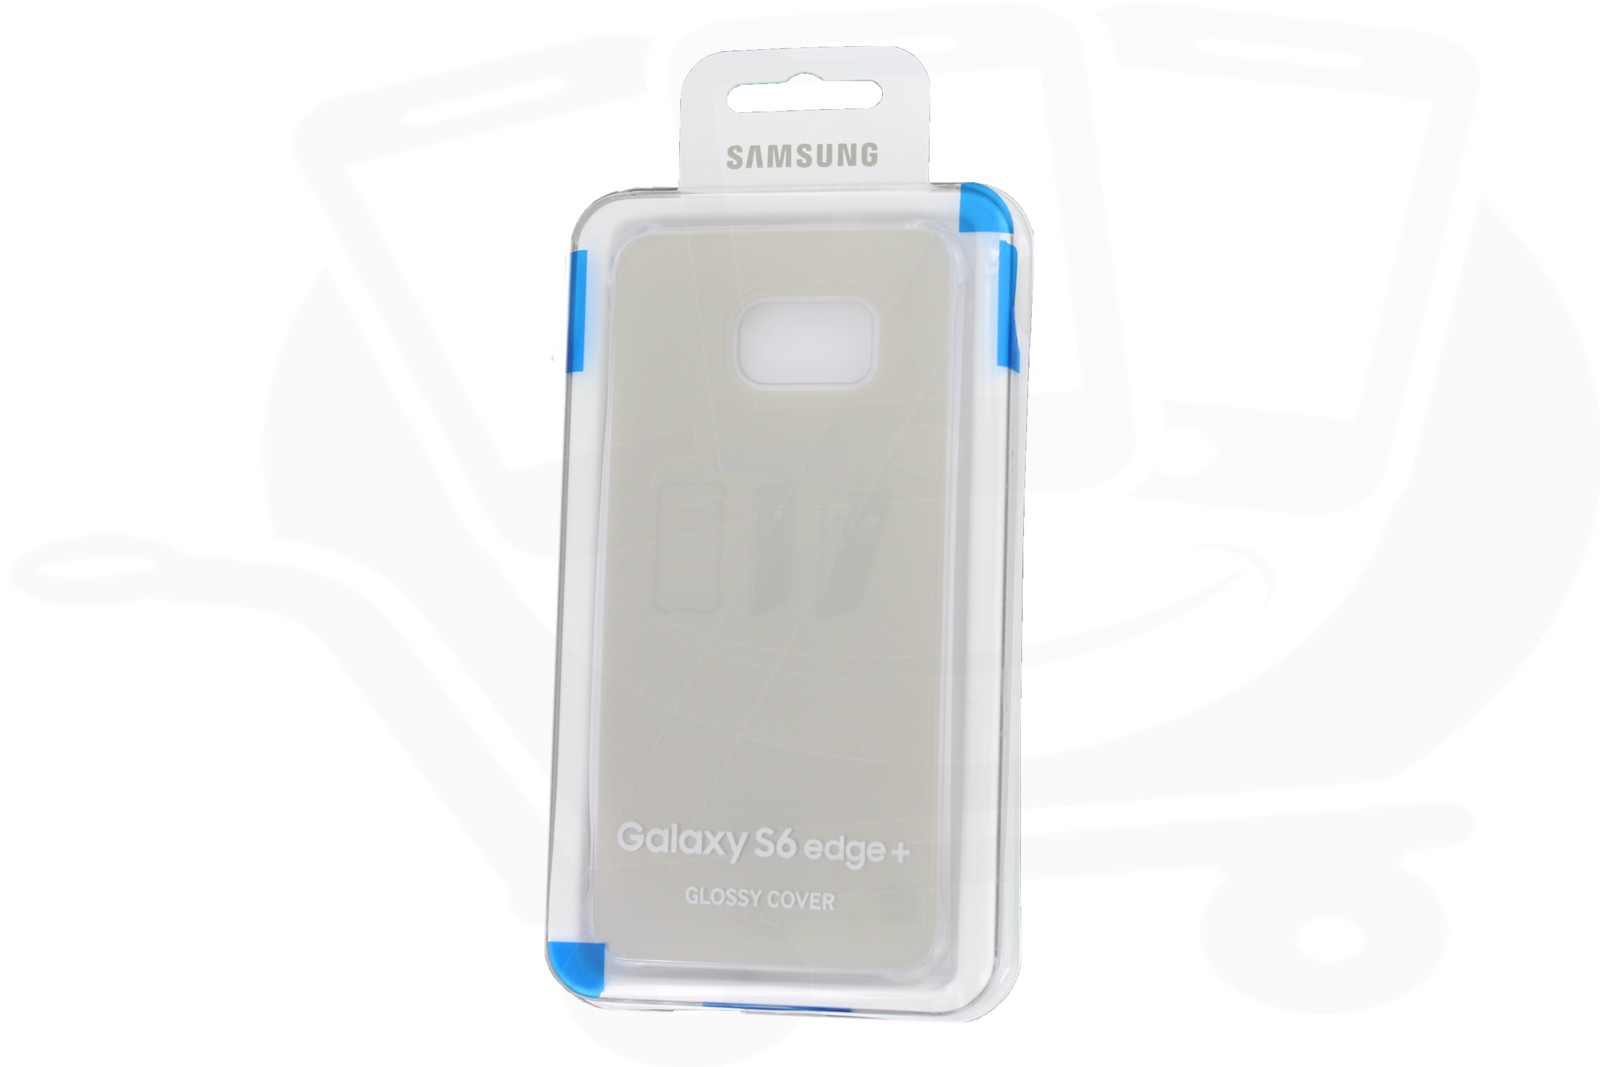 new concept bfb83 439fe Official Samsung Galaxy S6 Edge+ Gold Glossy Cover - EF-QG928MFEGWW